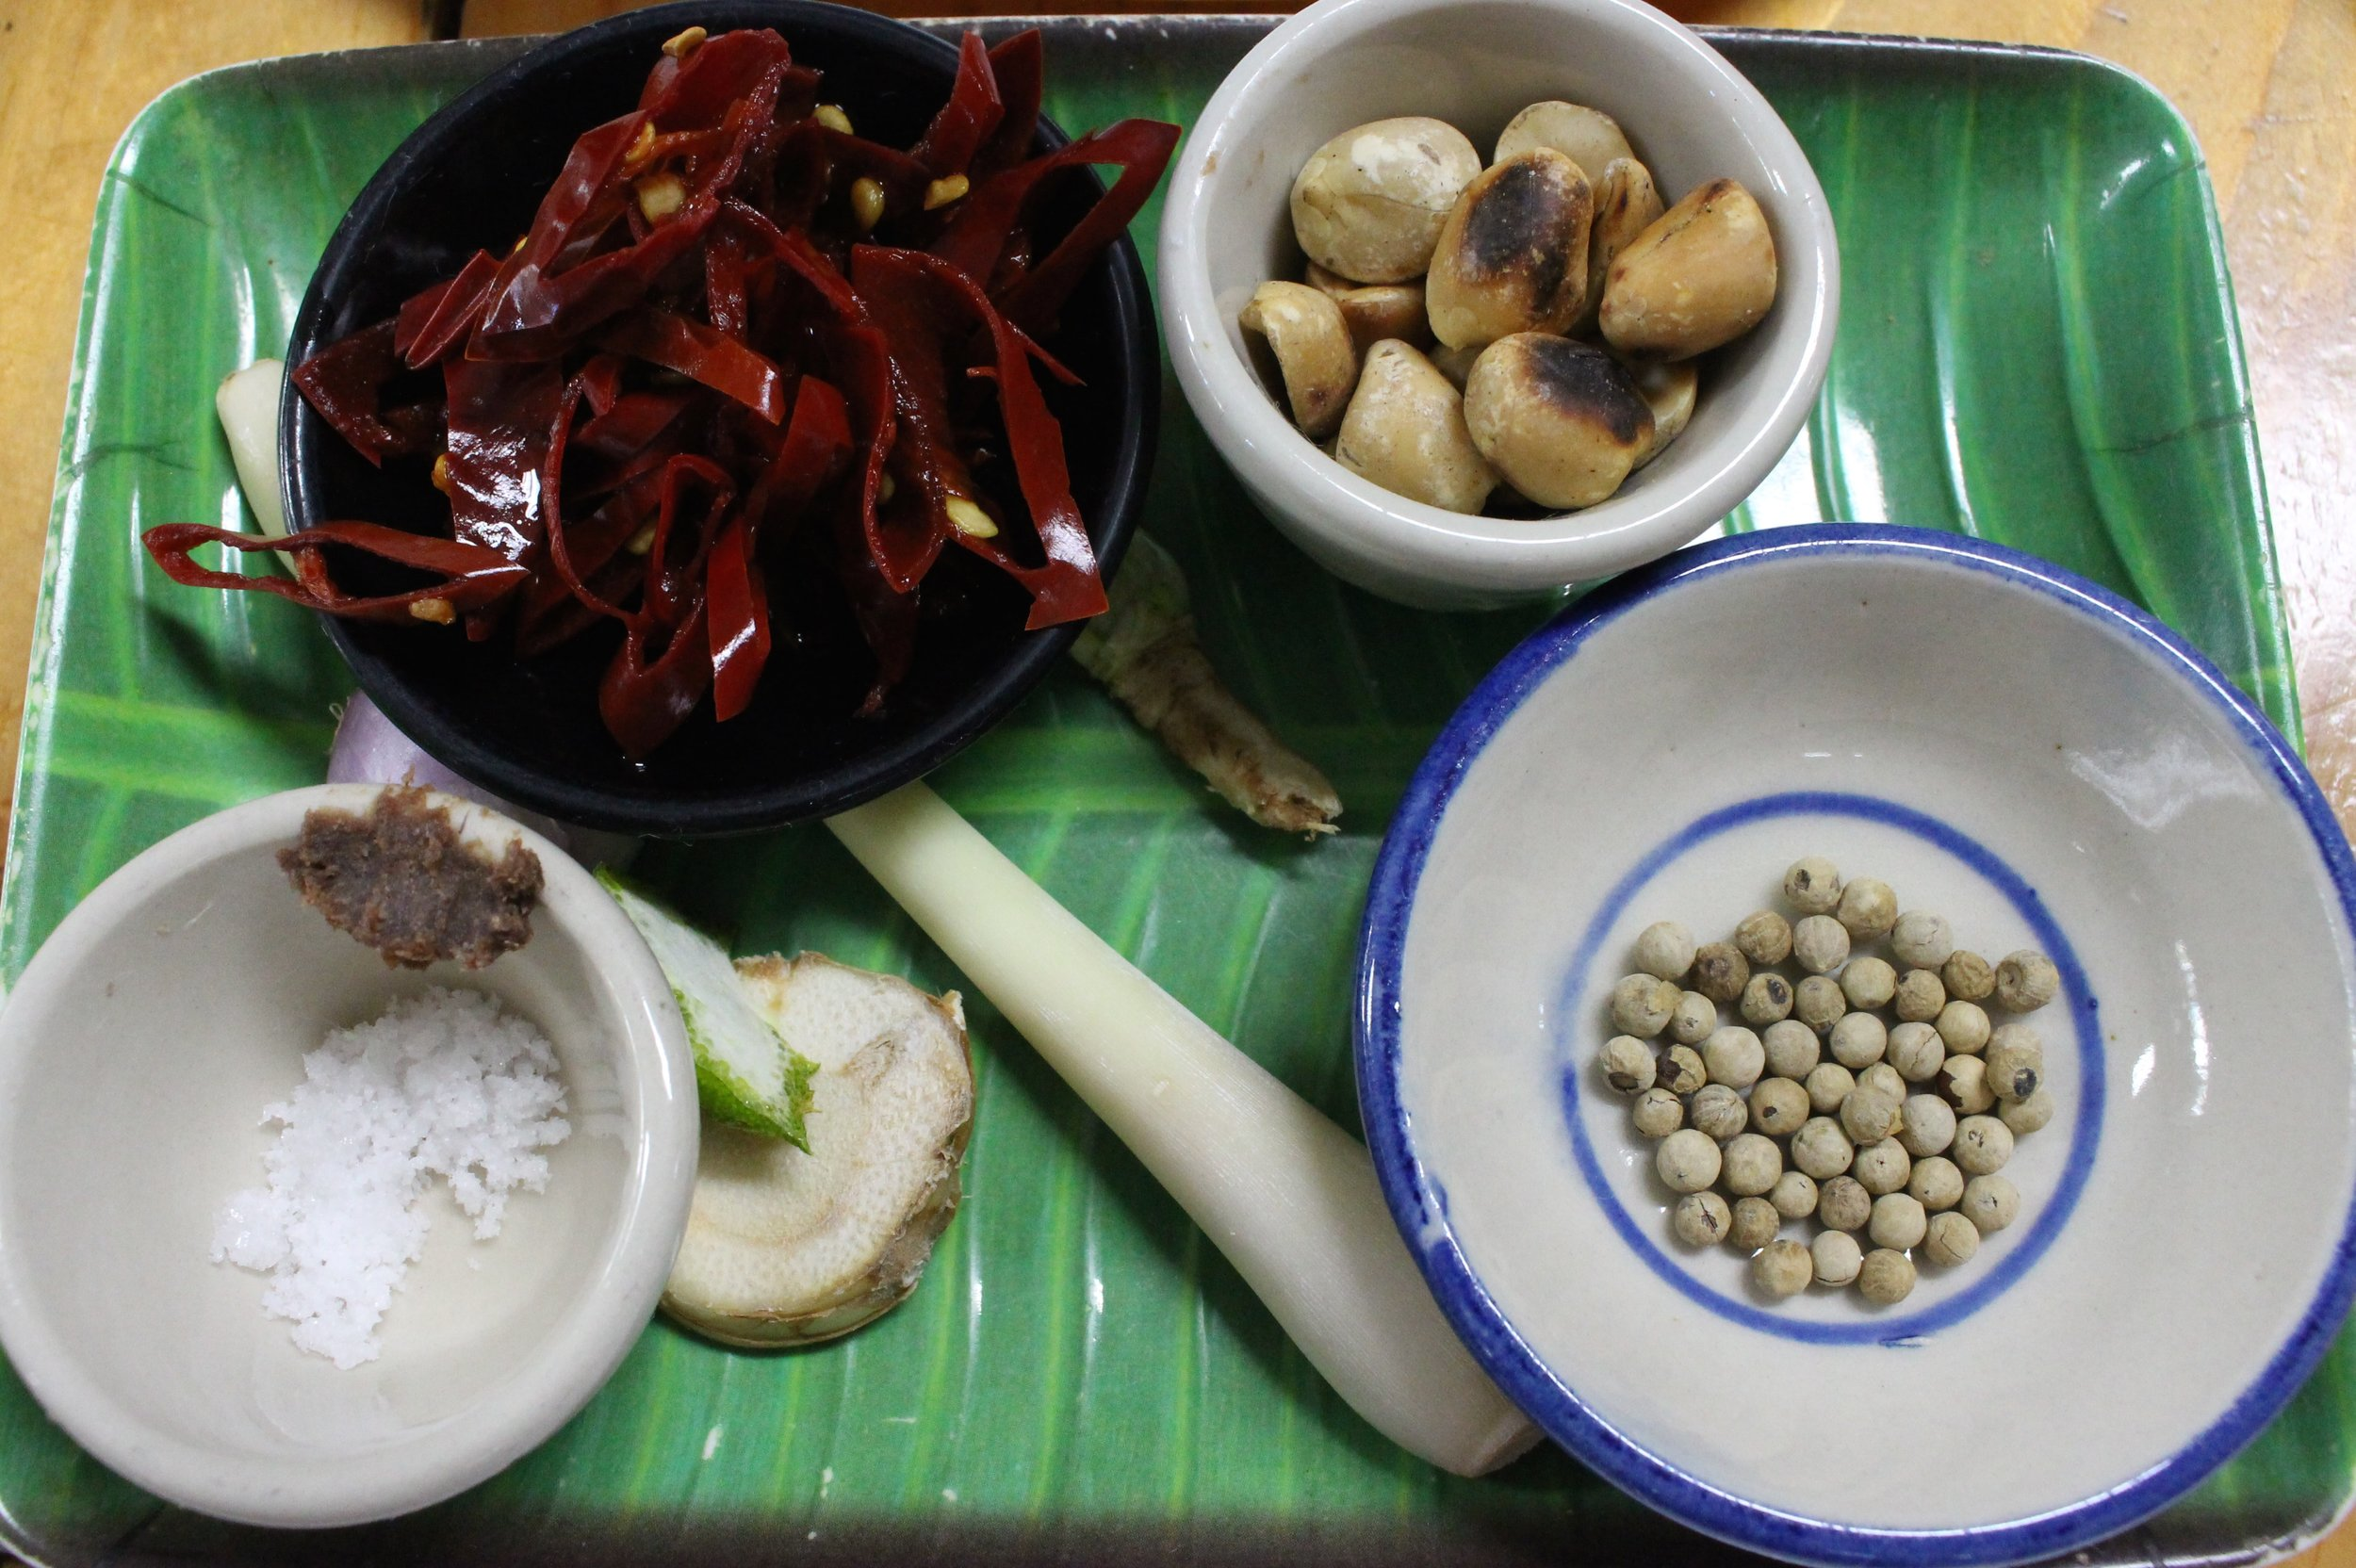 Each dish was divided into ingredients